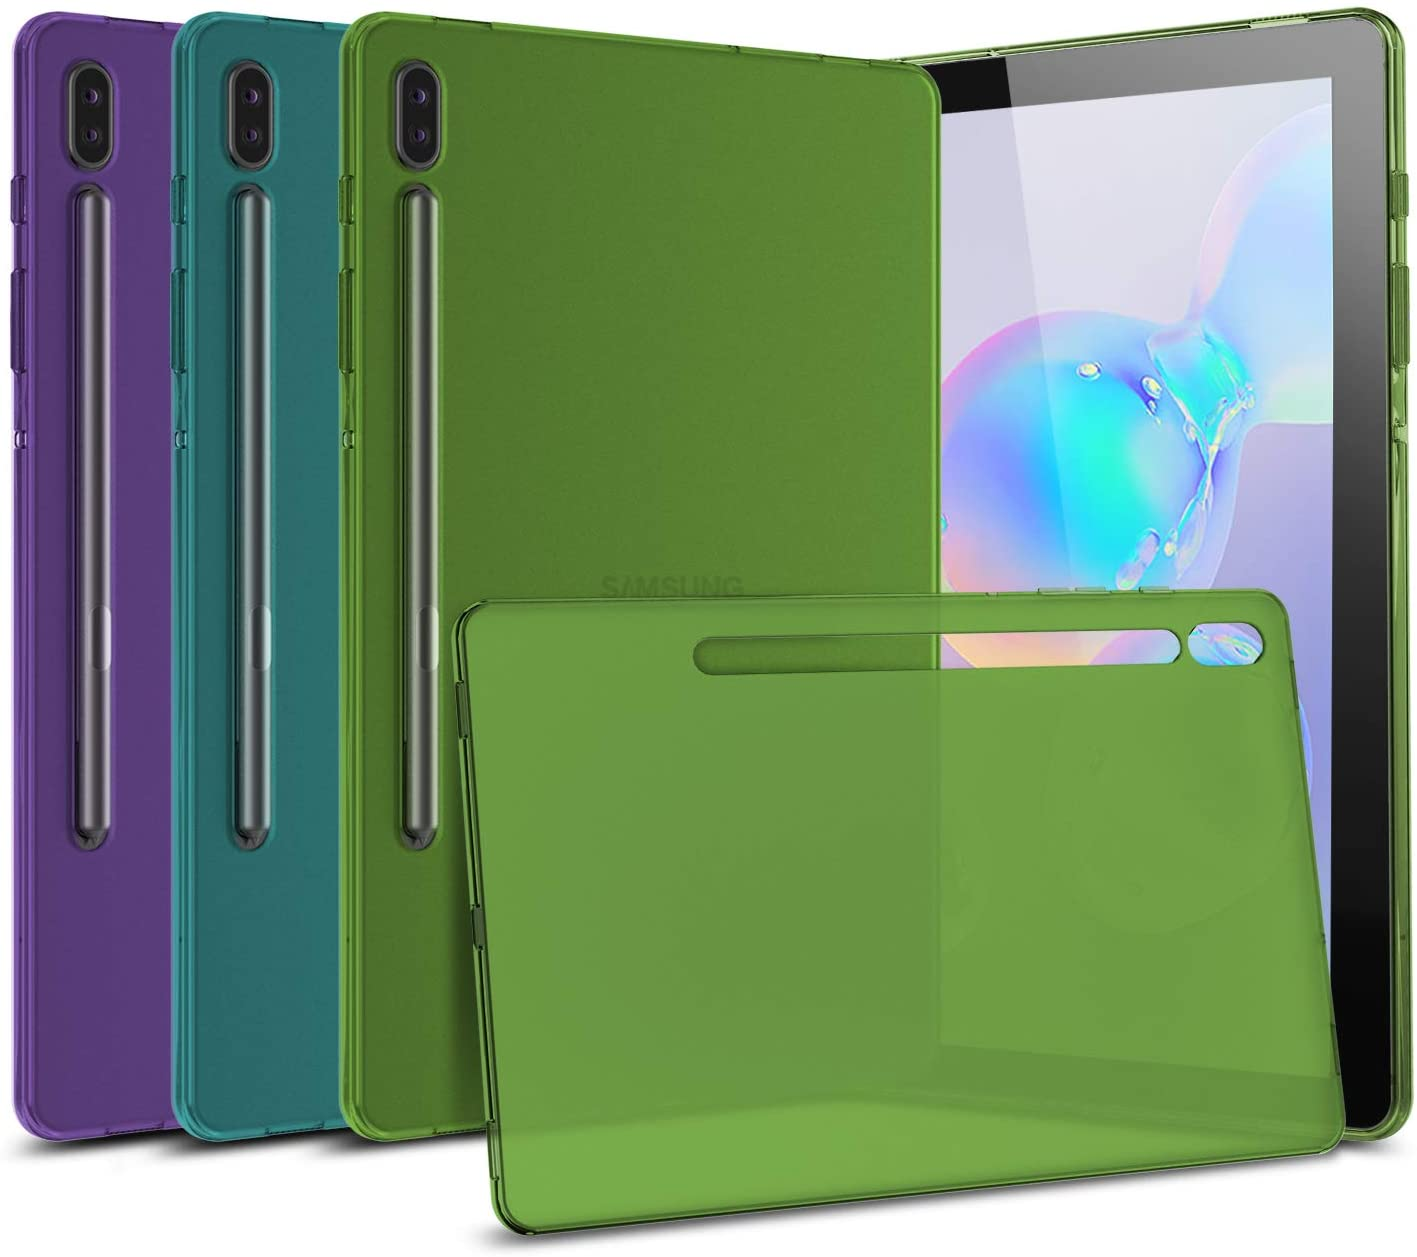 [3-Pack] Cbus Wireless Flex-Gel Silicone TPU Case Compatible with Samsung Galaxy Tab S6 (Purple, Turquoise, Green)